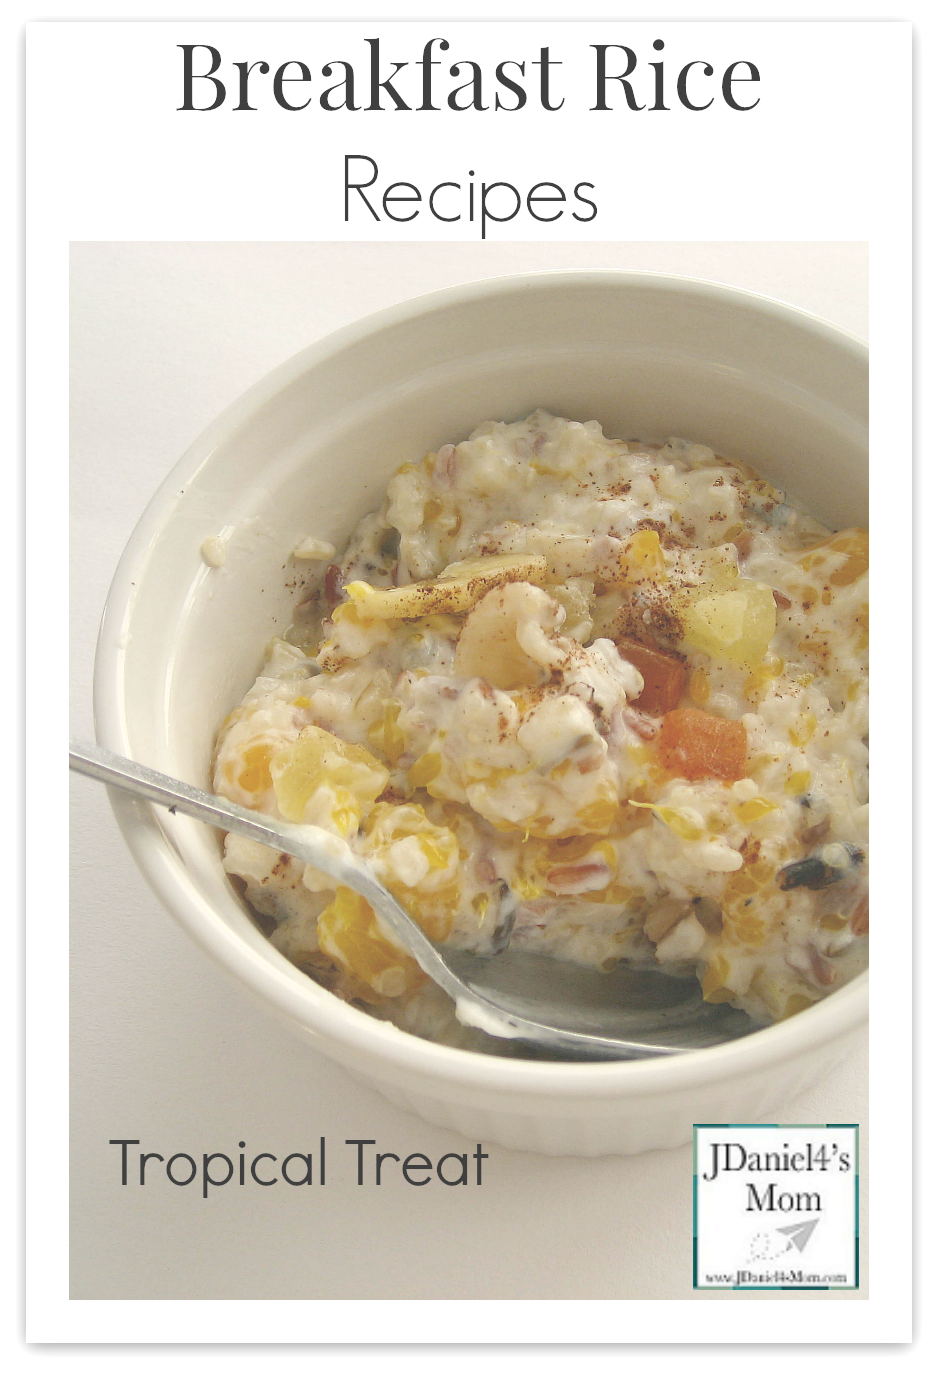 Breakfast Rice Recipes- Tropical Rice Treat